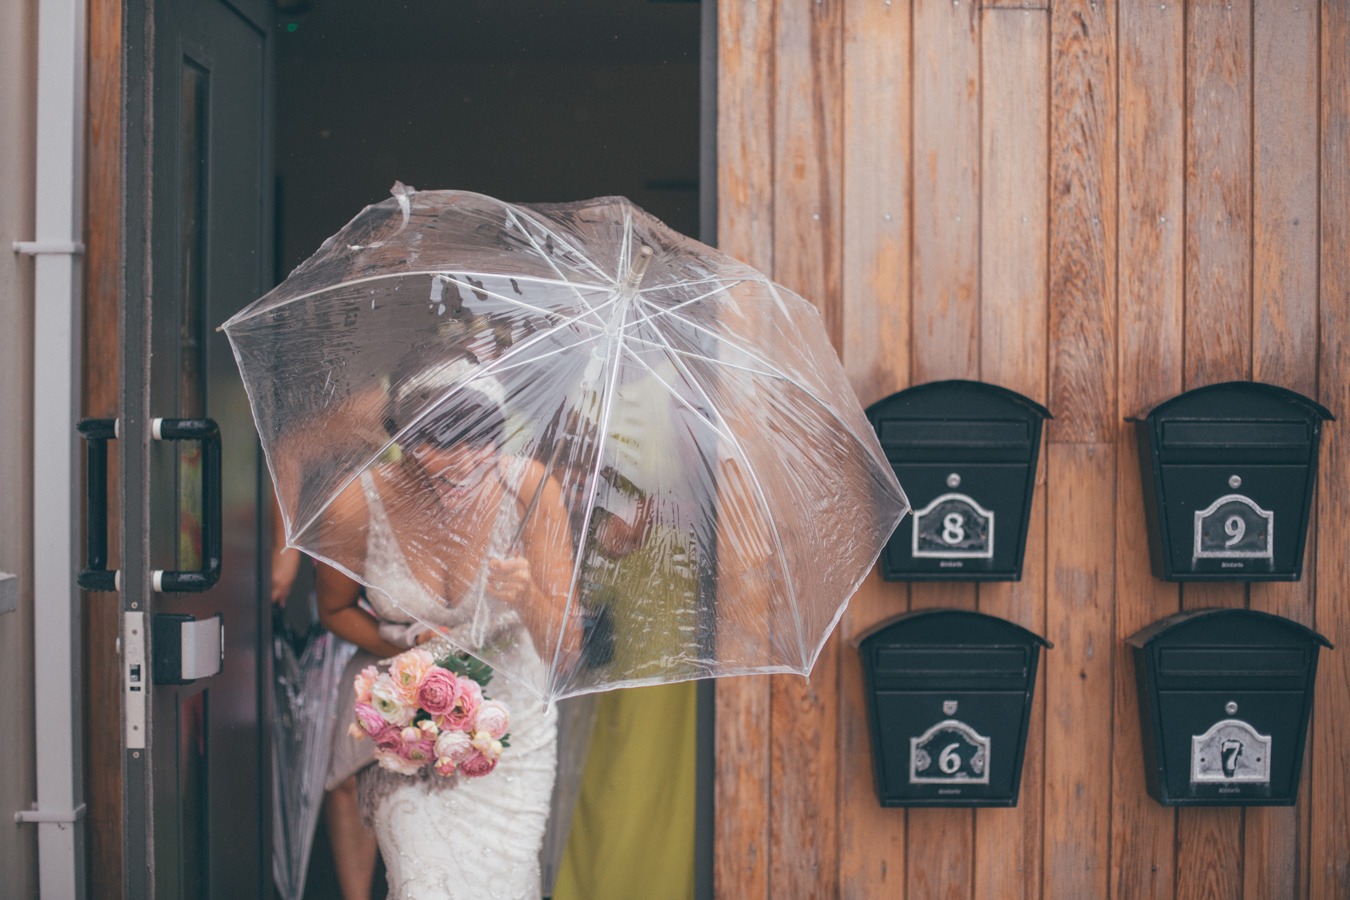 One of a set of images taken at this Destination Wedding of Jo and Steve, Jersey The Channel islands. Bride in the rain on her way to the wedding. Wedding Photography By Matt Porteous & Max Burnett.